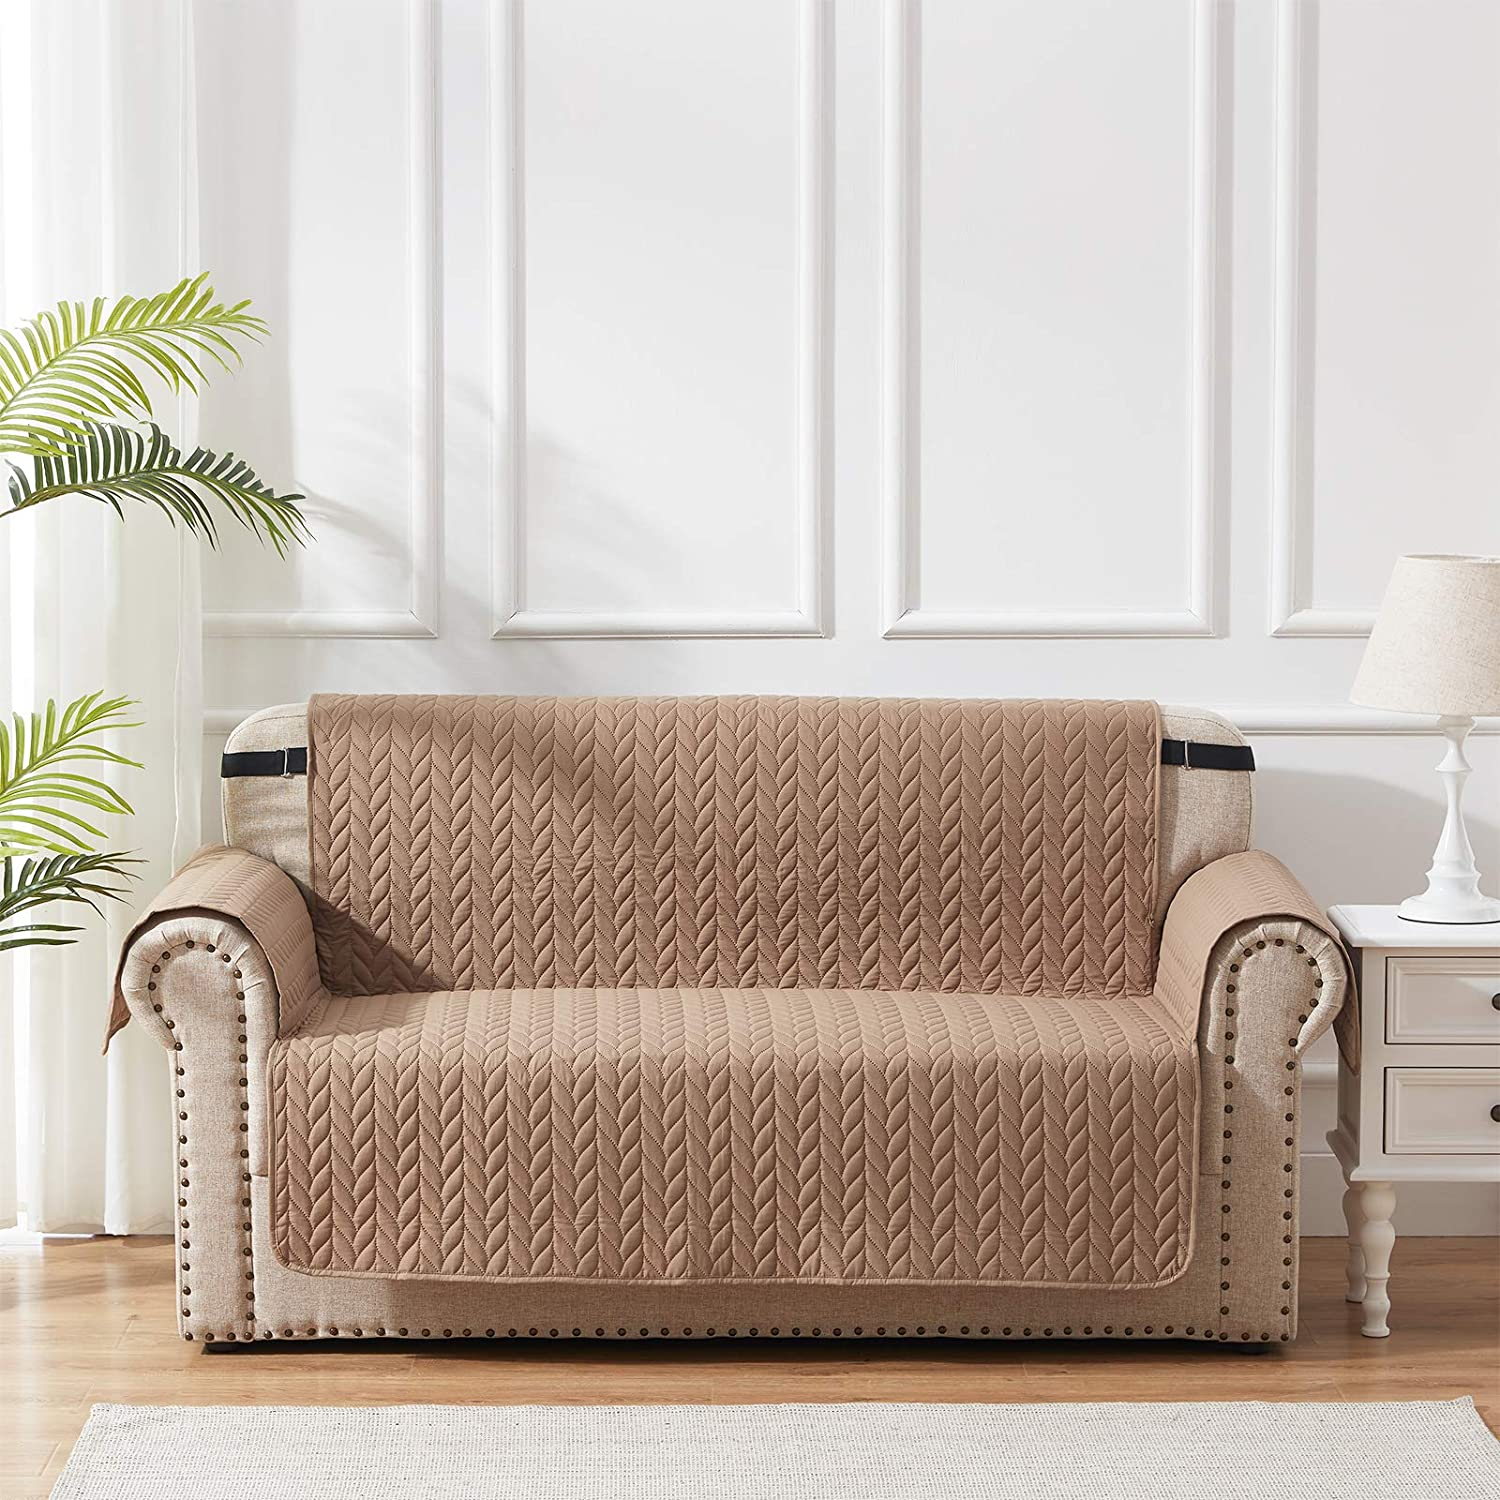 SunStyle Home Furniture Protector Loveseat Cover 100% Waterproof Leaf Embroidered Loveseat Couch Cover with Adjustable Elastic Strap and Non-Slip Backing - Taupe/Beige